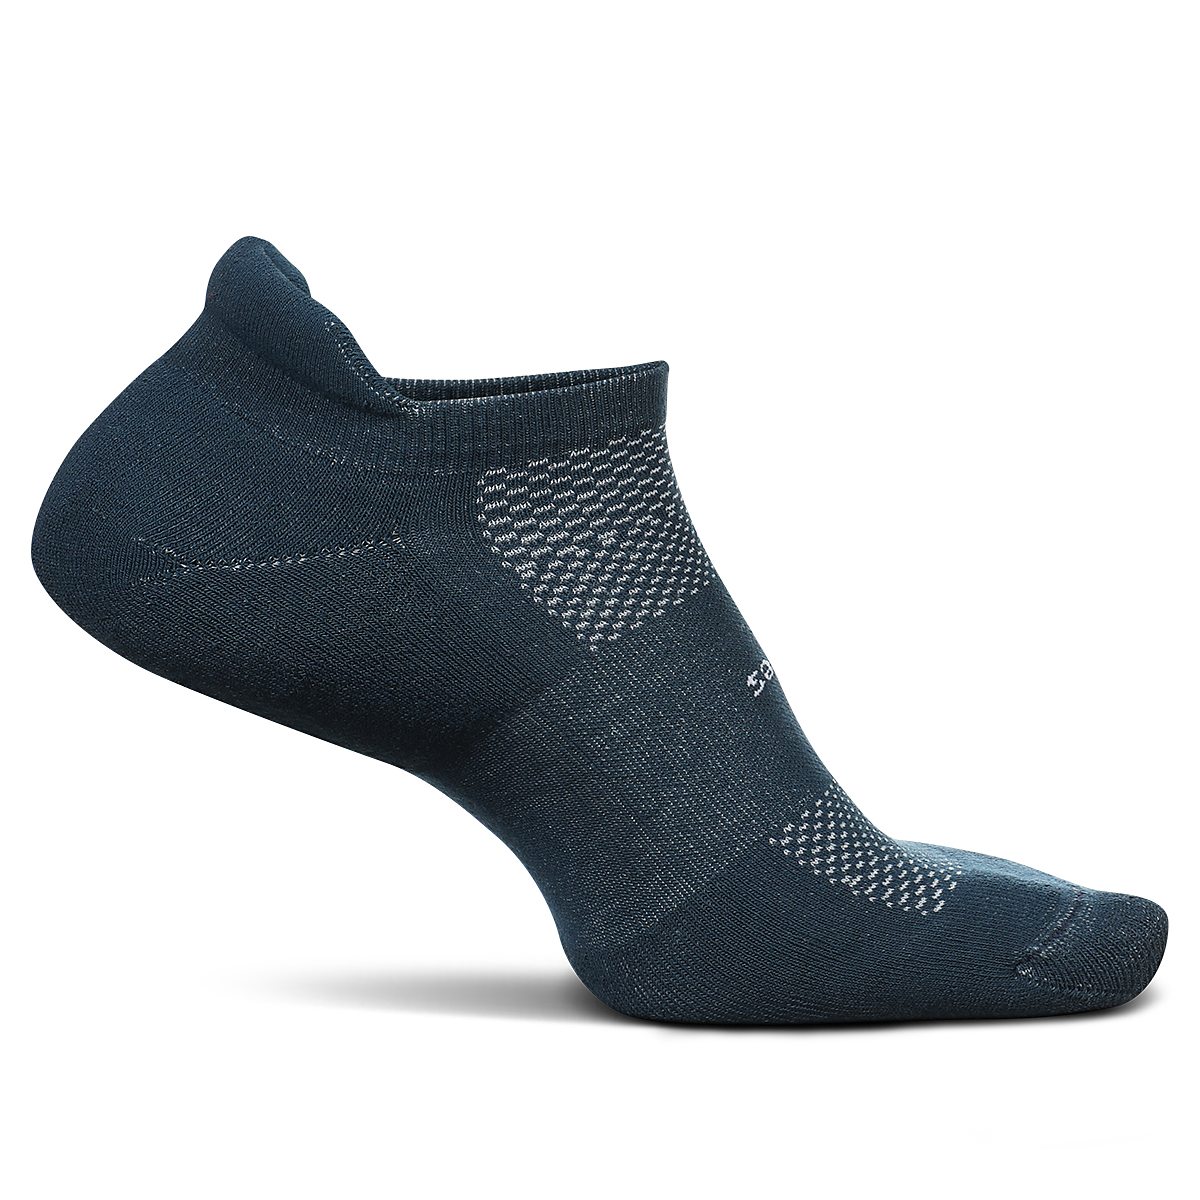 Feetures High Performance Cushion No Show Tab Socks - Color: French Navy - Size: S, French Navy, large, image 1